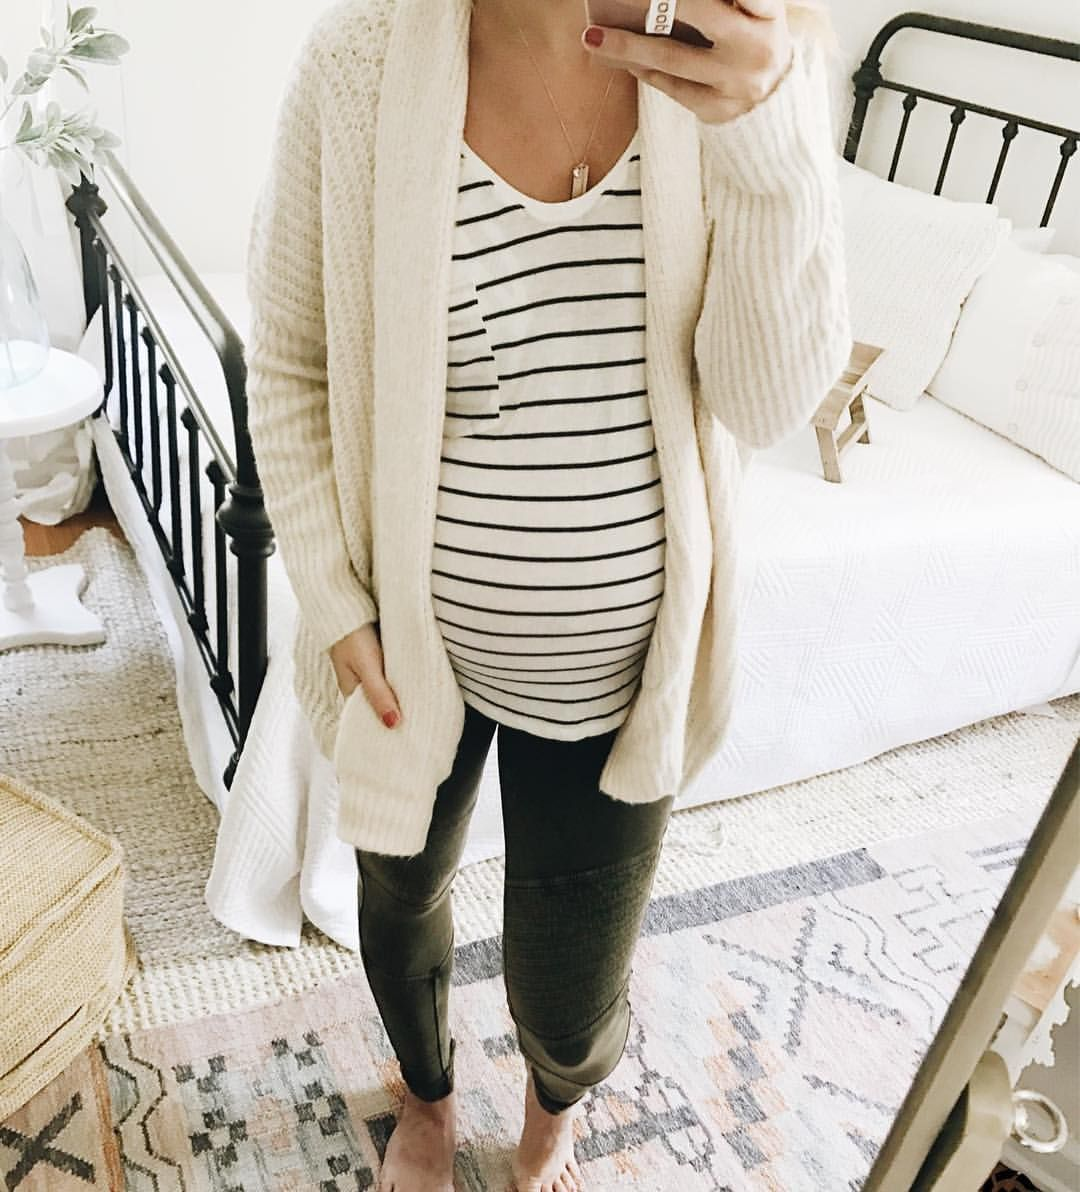 The Perfect Outfit I Love Strips And Cream Colors With -8051